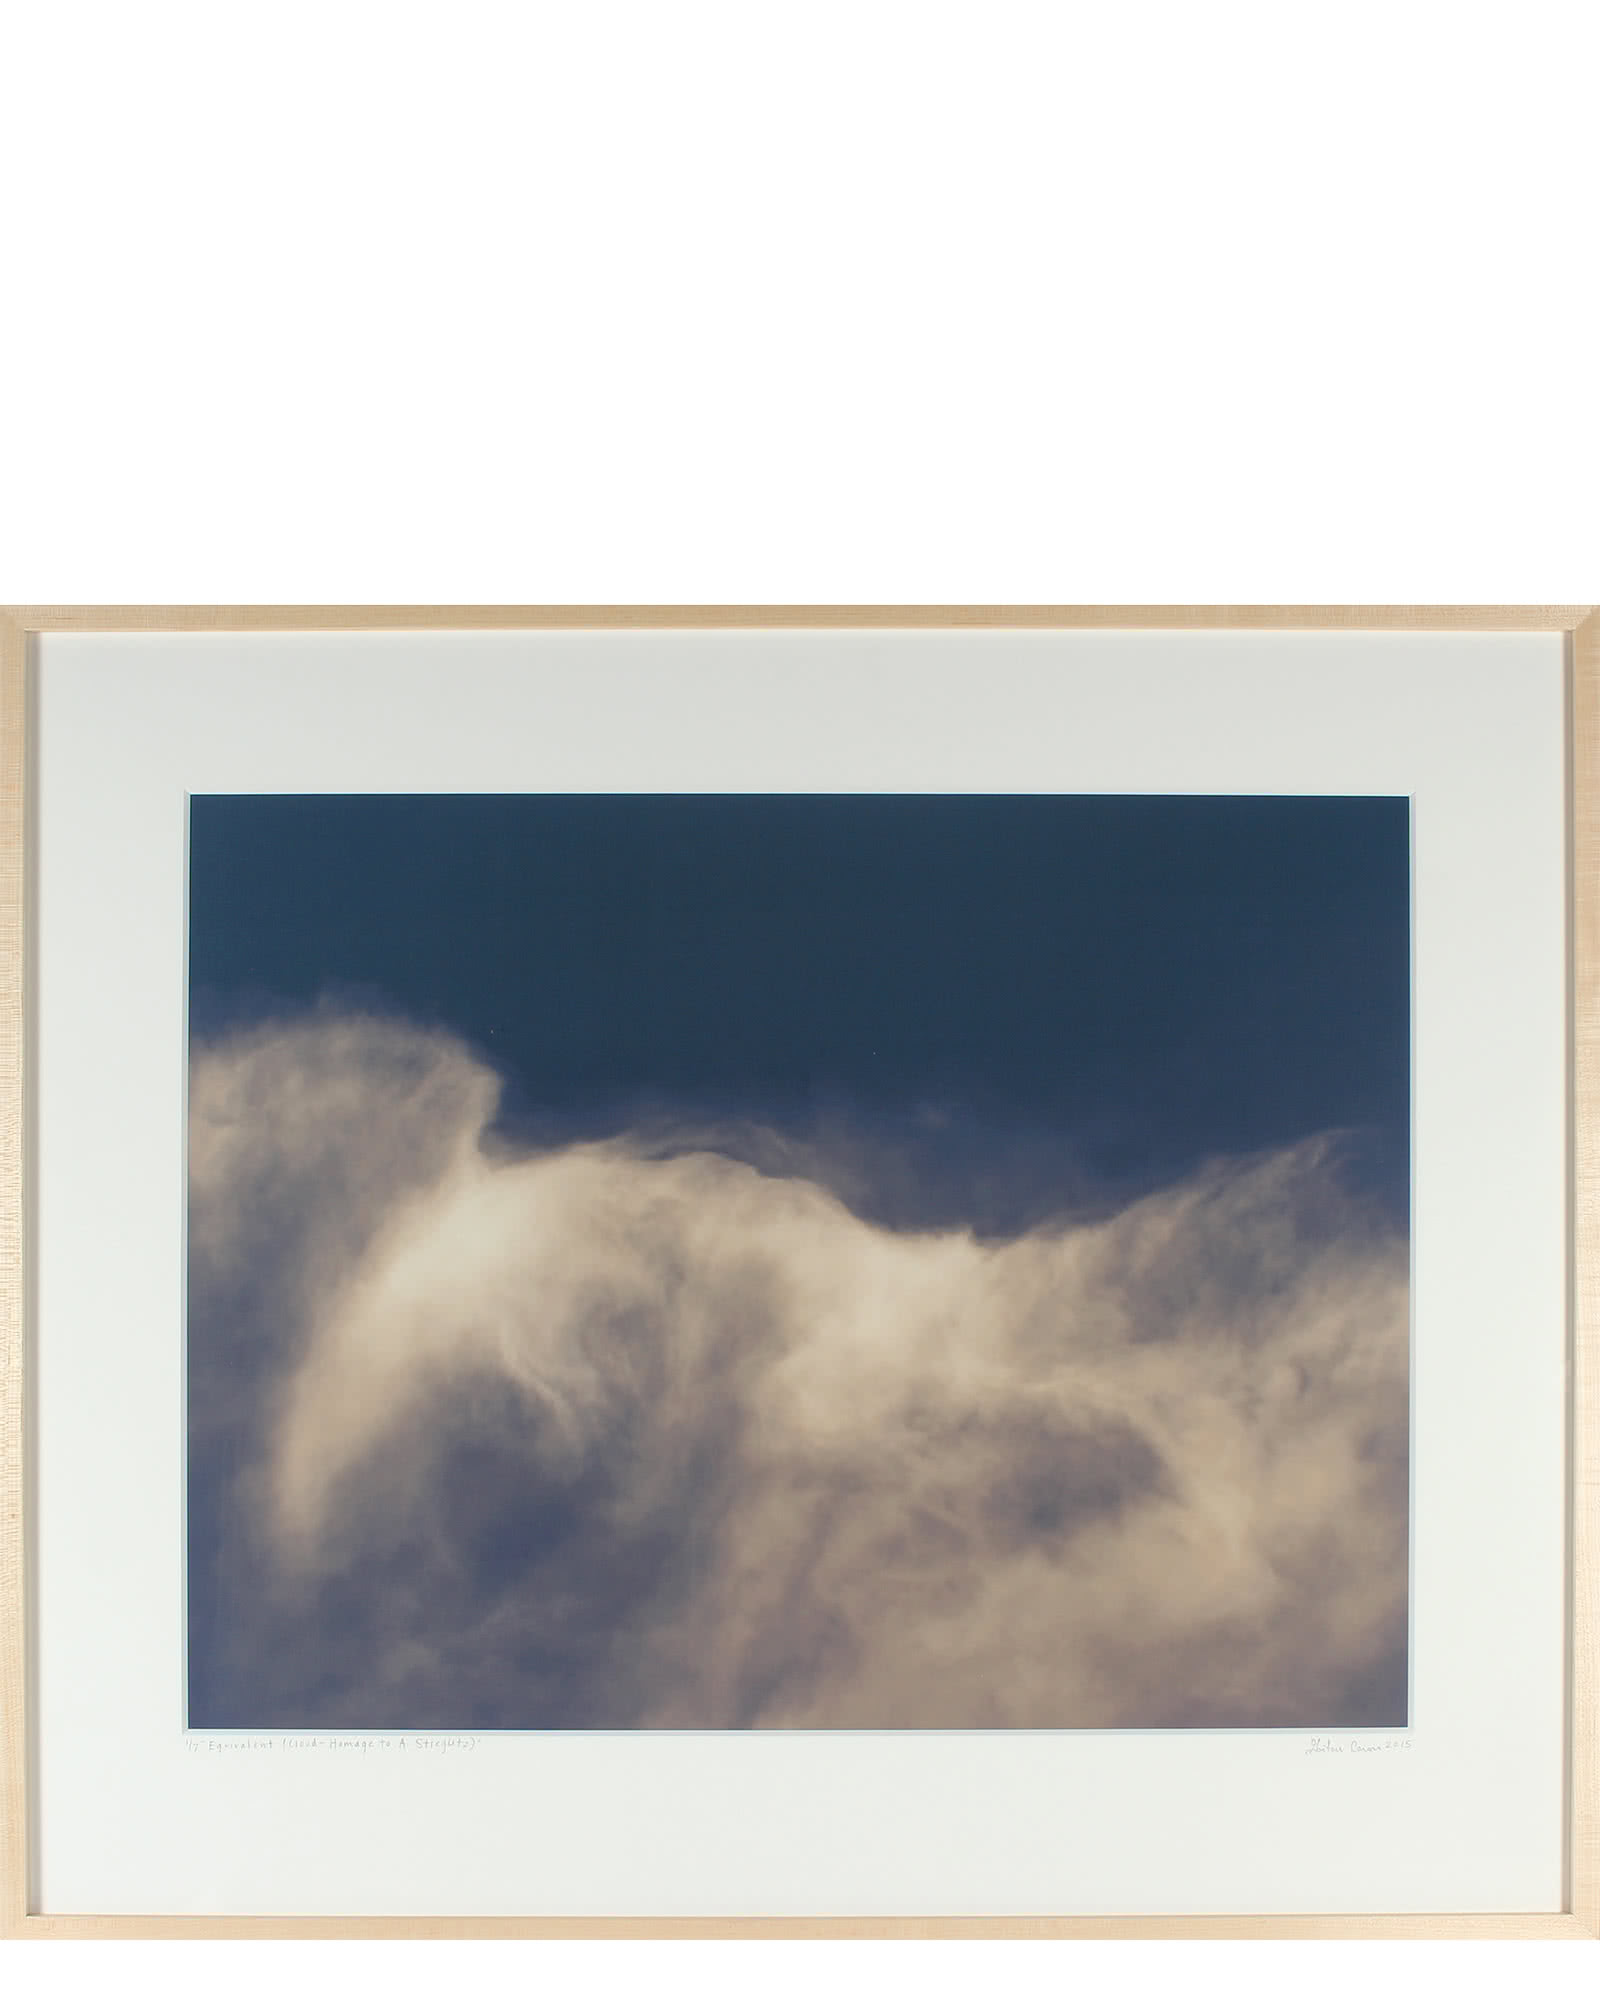 """Equivalent (Cloud - Homage to A. Stieglitz)"" by Gaetan Caron,"